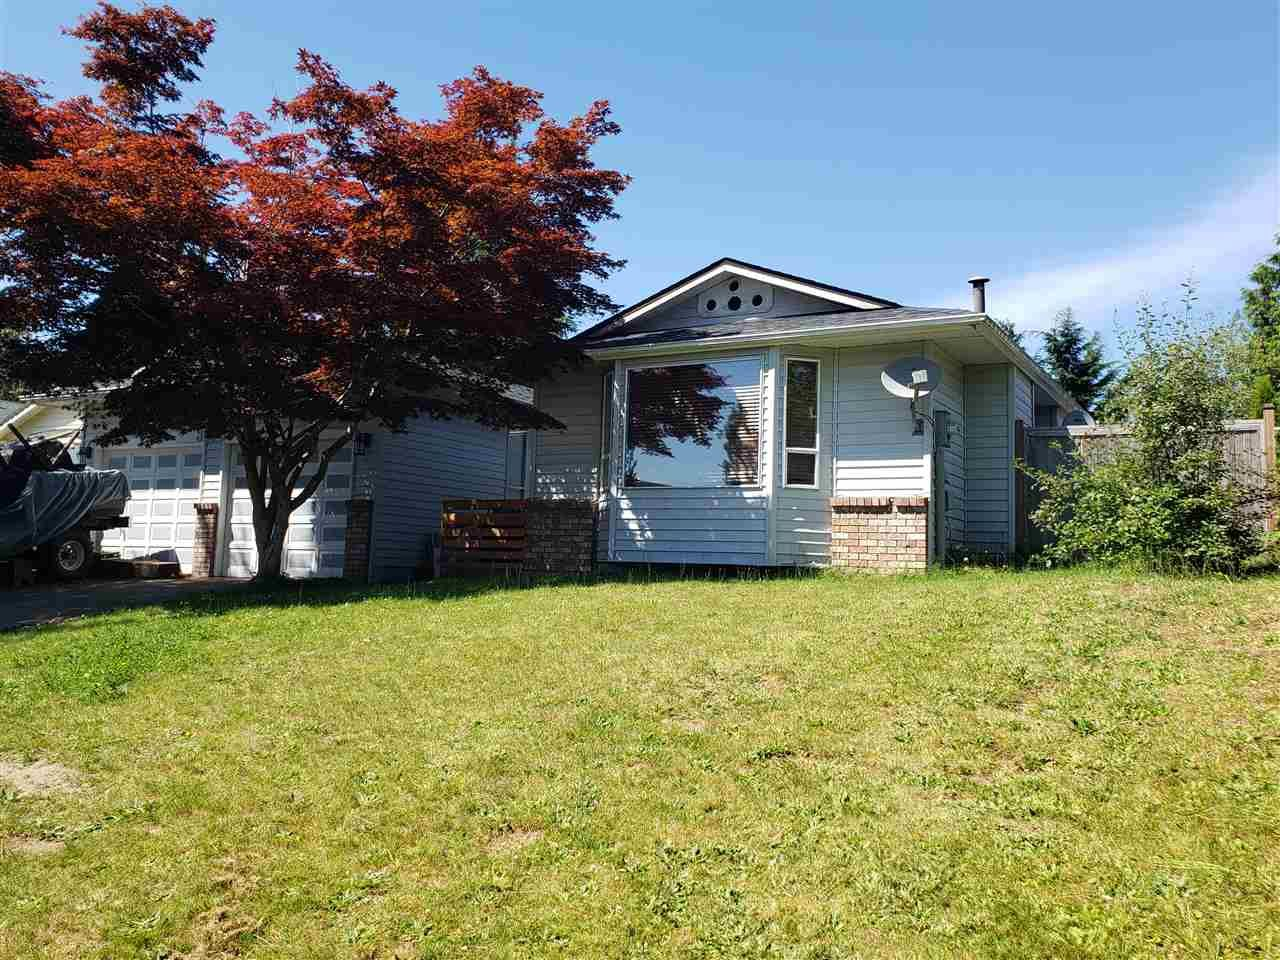 Main Photo: 32995 WHIDDEN Avenue in Mission: Mission BC House for sale : MLS®# R2480355